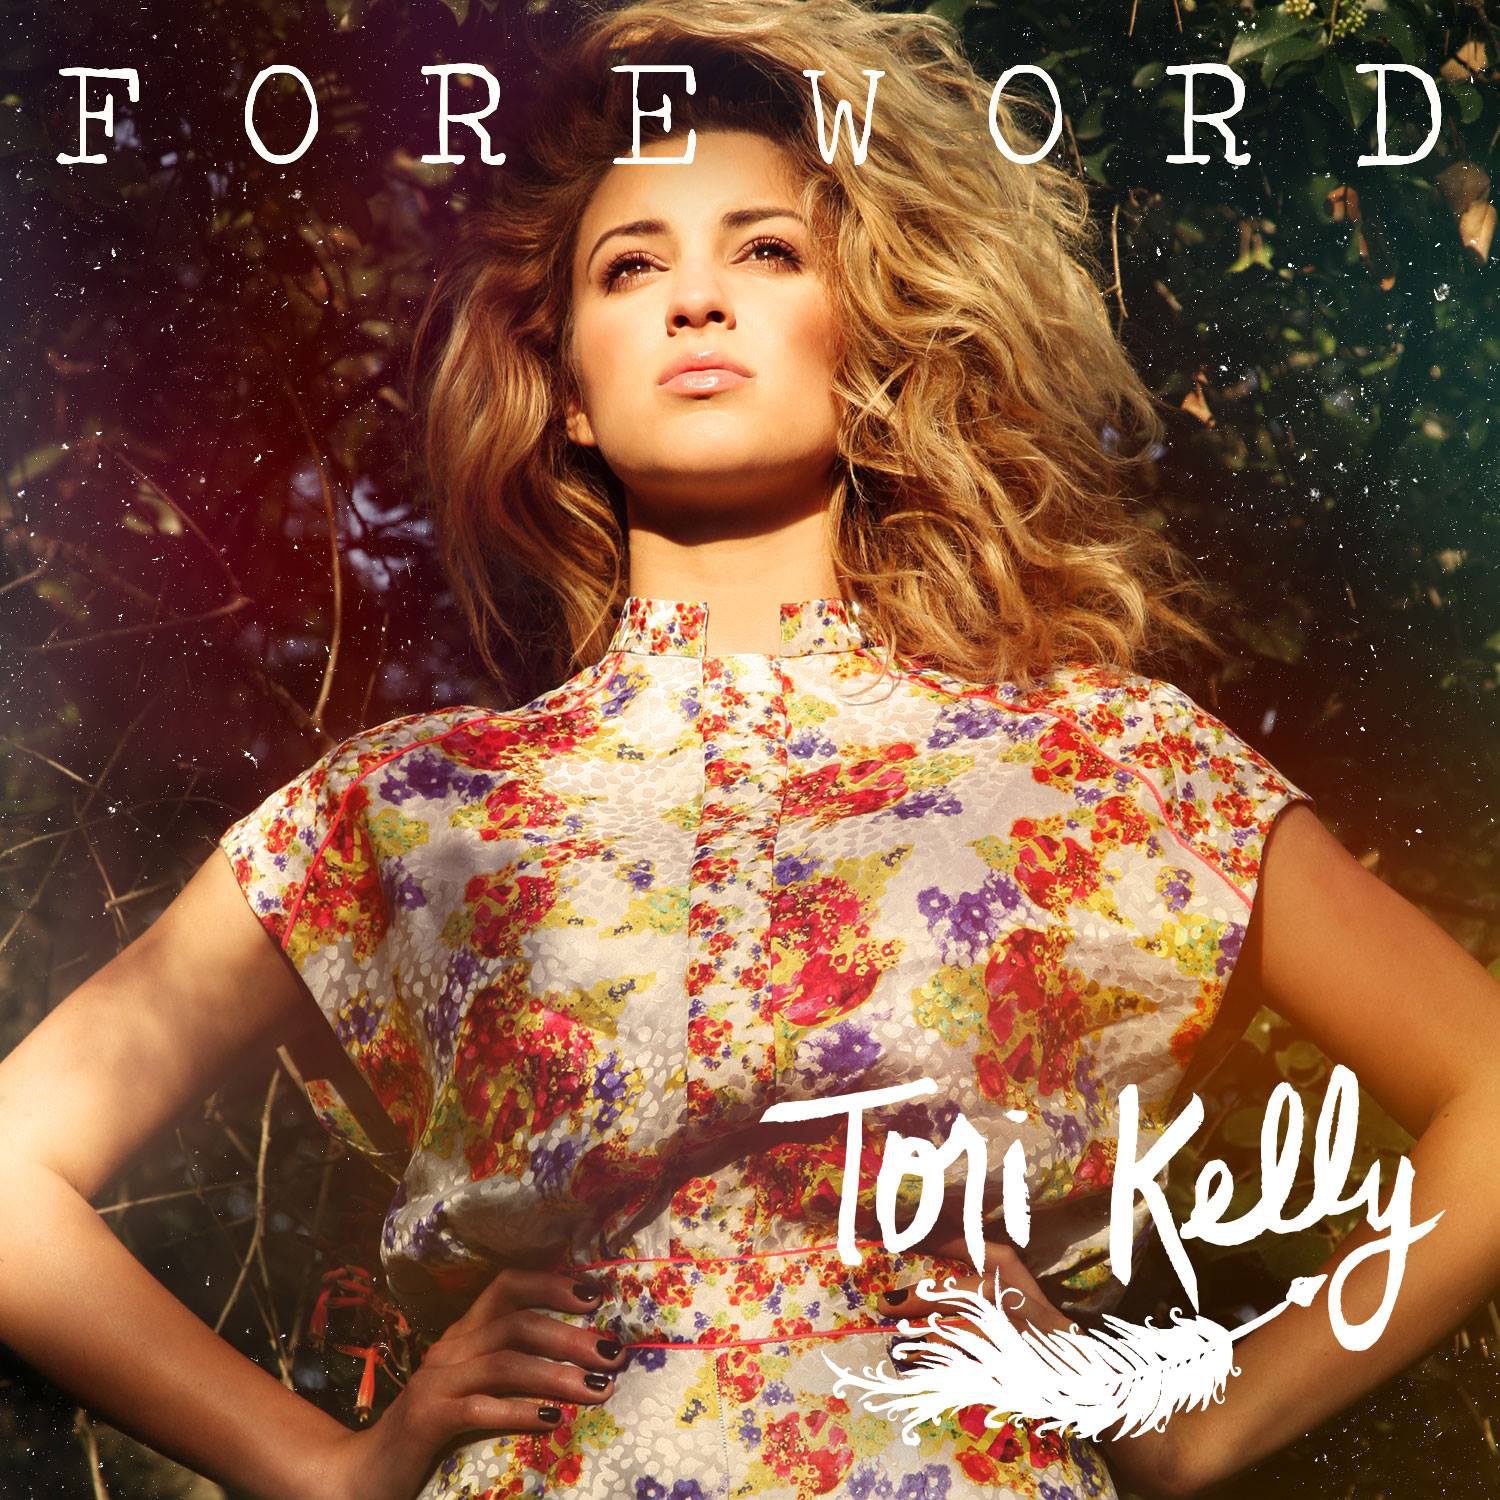 Paper Hearts - Tori Kelly - When I first heard Tori Kelly I fell in love with her voice, it's so sweet and soothing. This song honestly sounds like a narrative of a fairy tale. When I close my eyes I can see the story in my head.